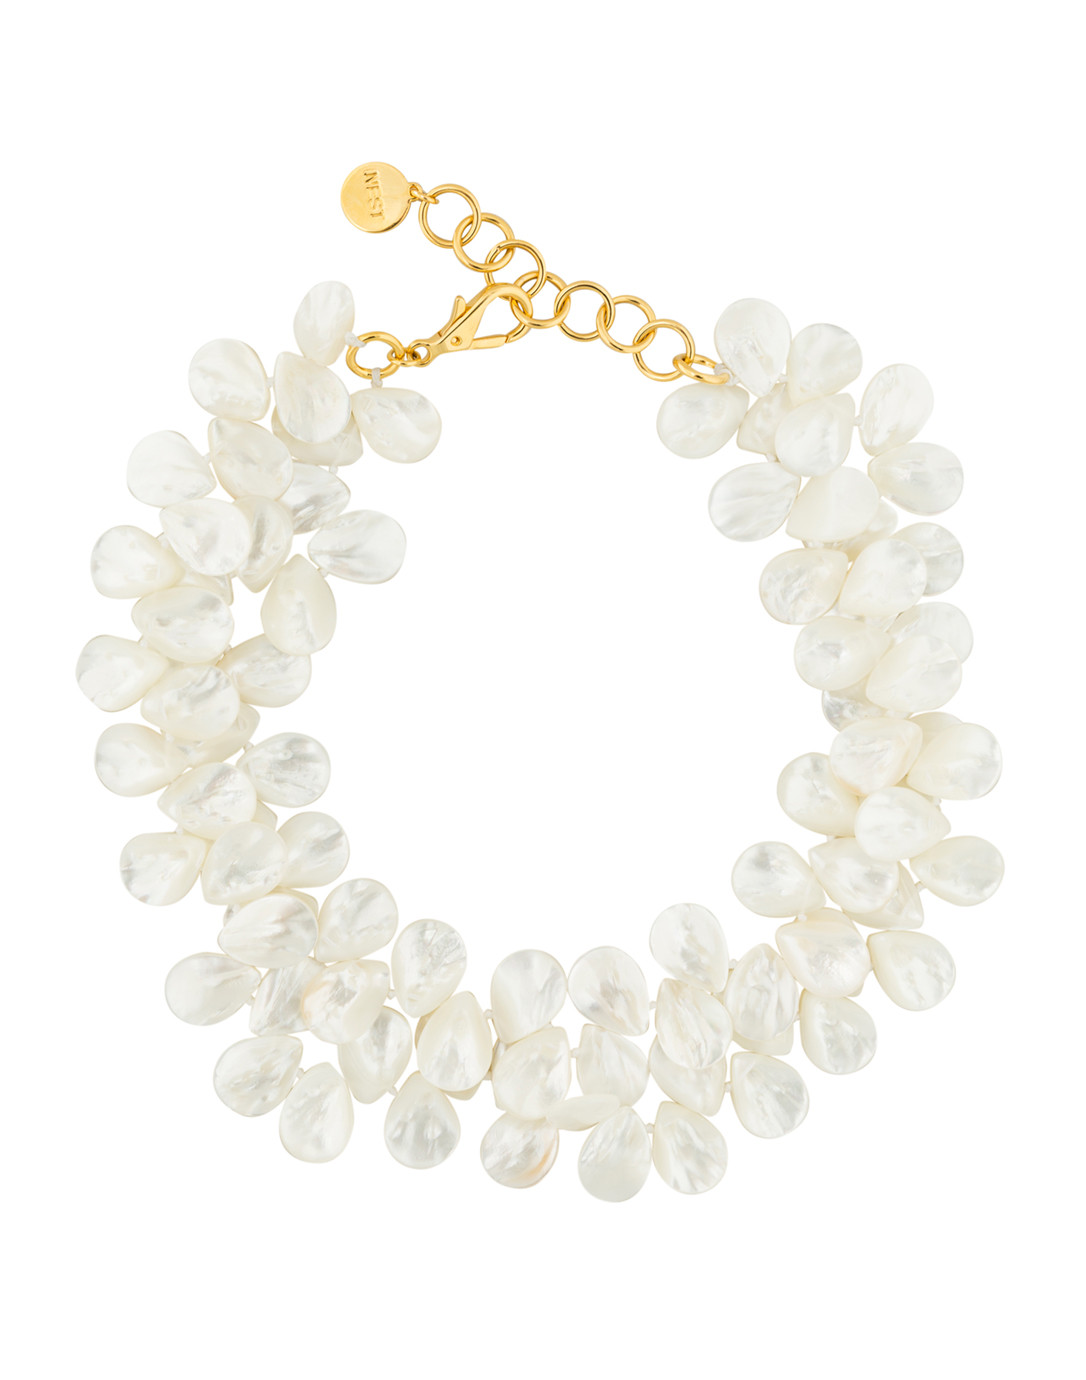 Nest Mother-of-Pearl Cluster Necklace oilpVV